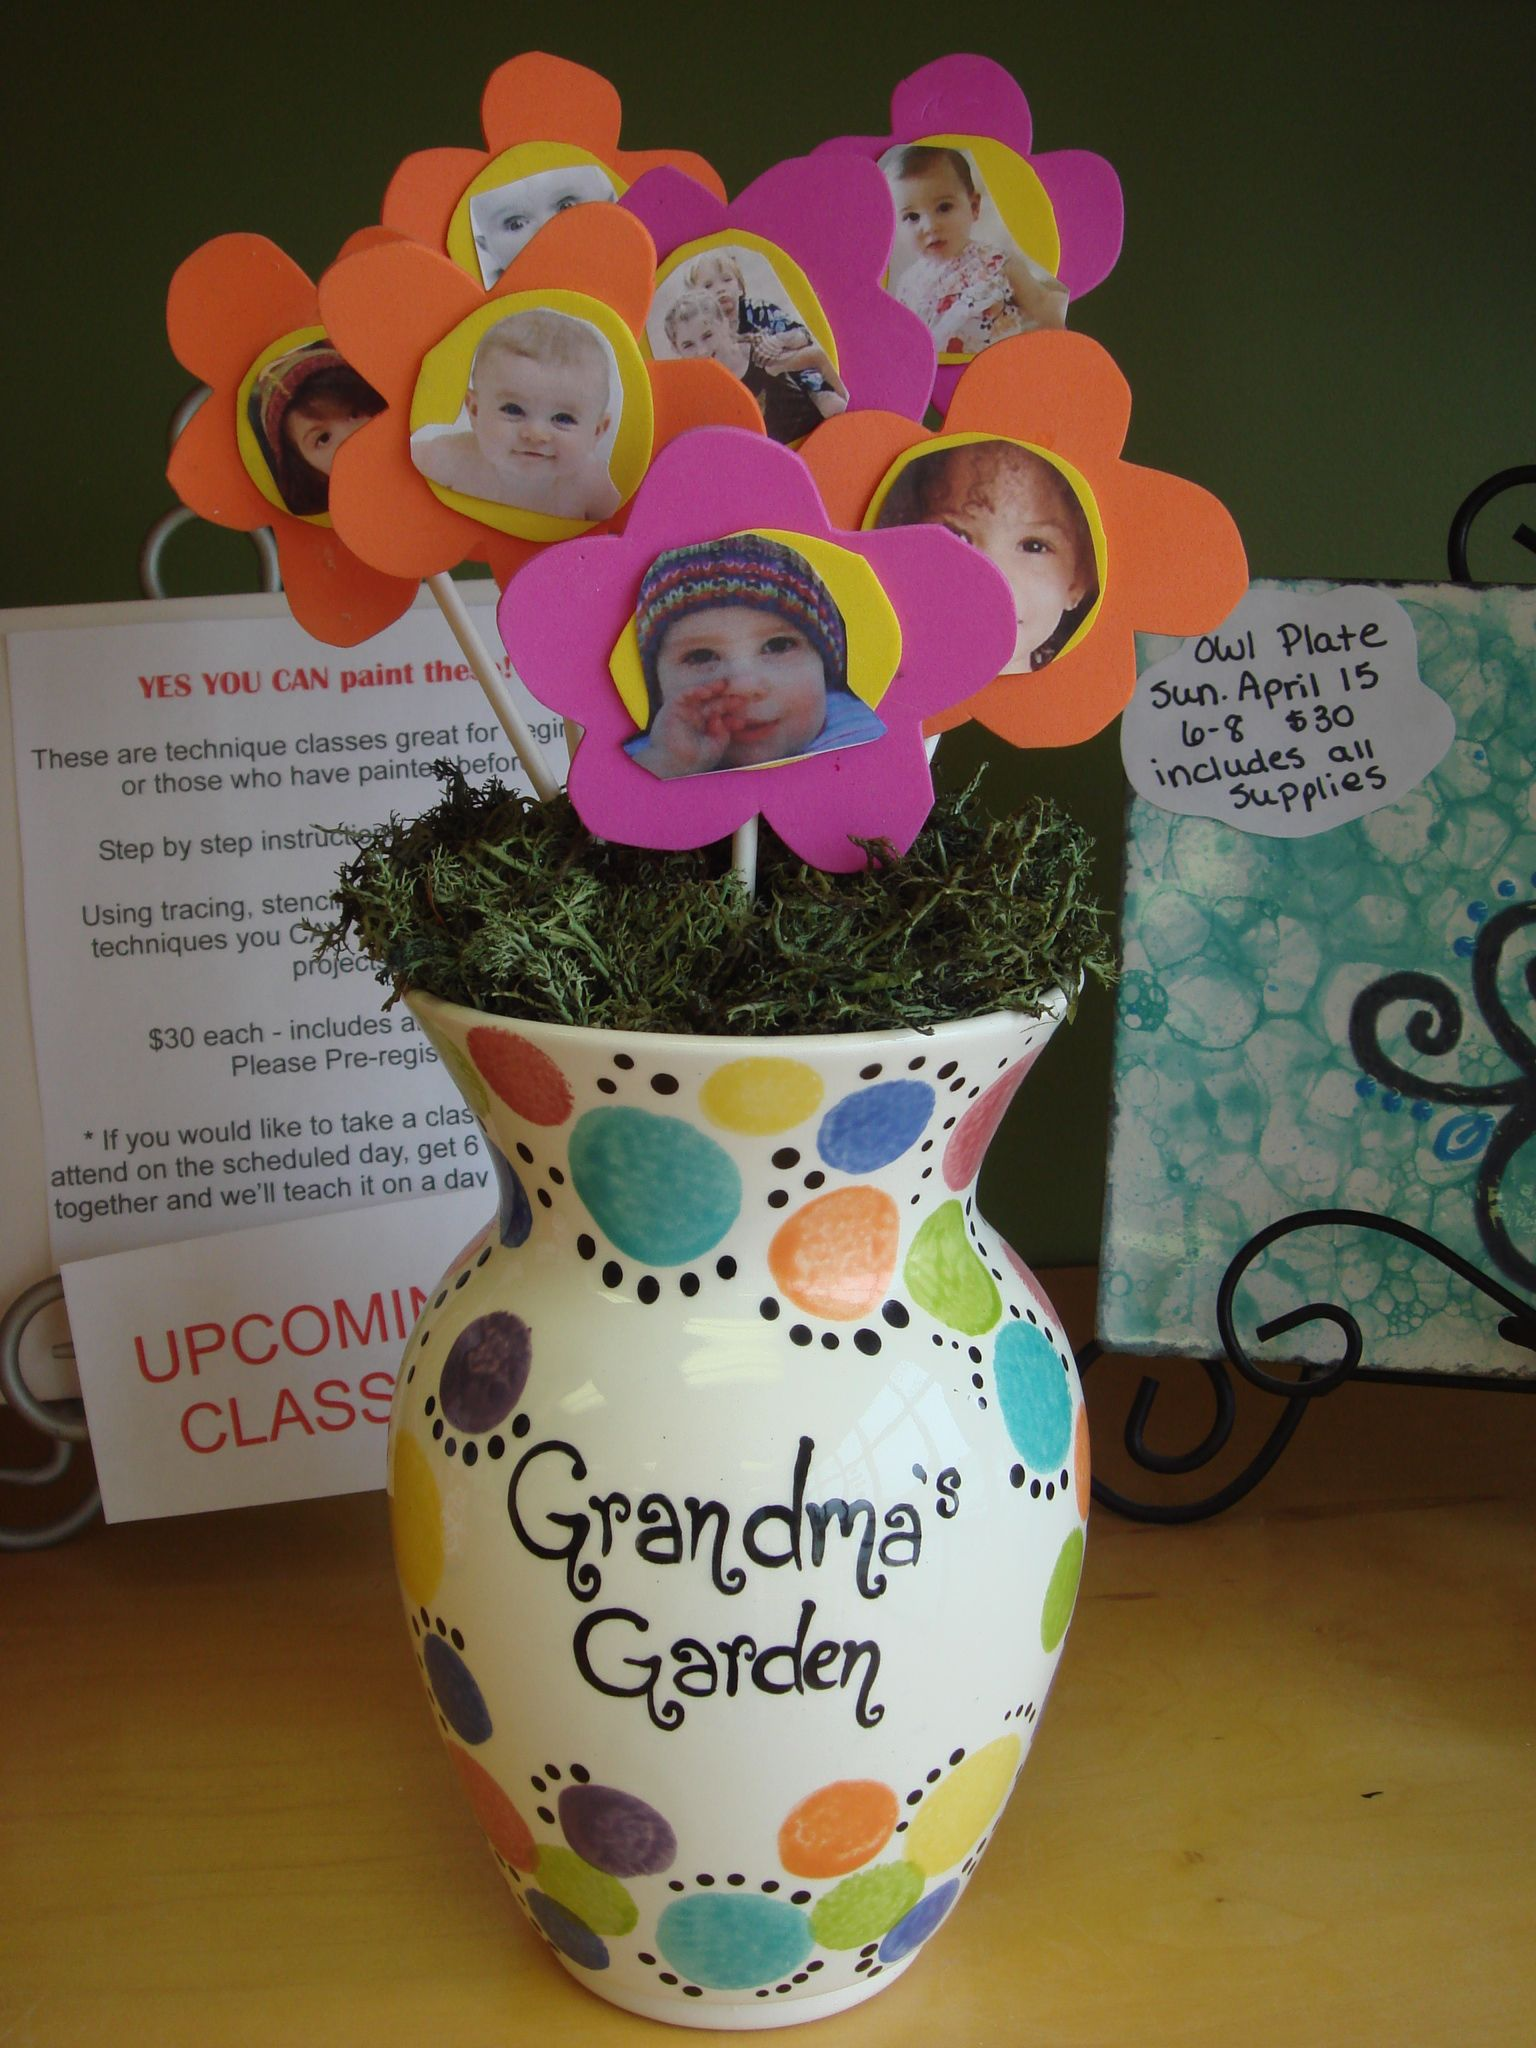 Looking For Mother's Day Crating Ideas? Look At These Creative